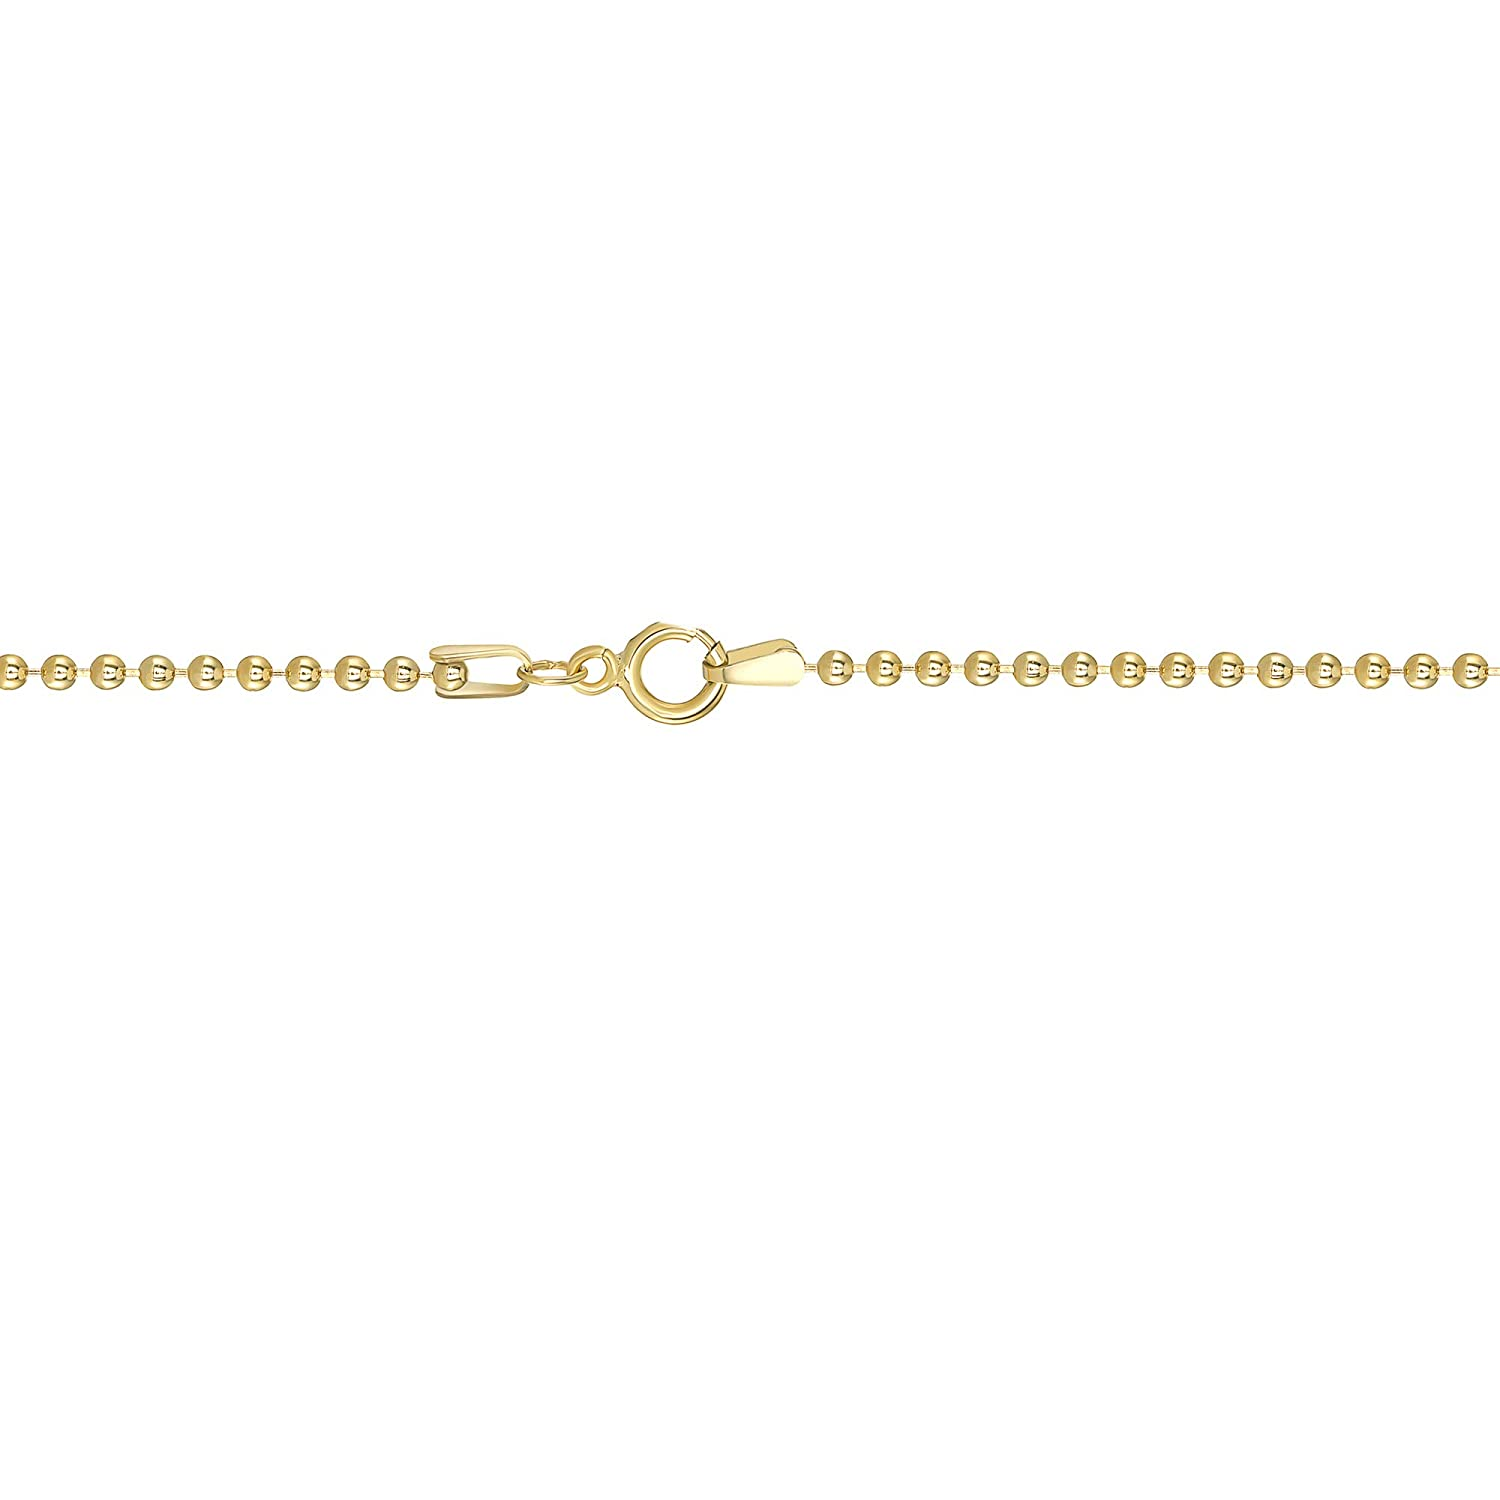 20-24 TousiAttar 14k Gold-Filled Ball Beaded Chain 1.5MM Necklace Gauge 14 Pendant for Jewelry 16-18 30-36 Inches Finish Chains